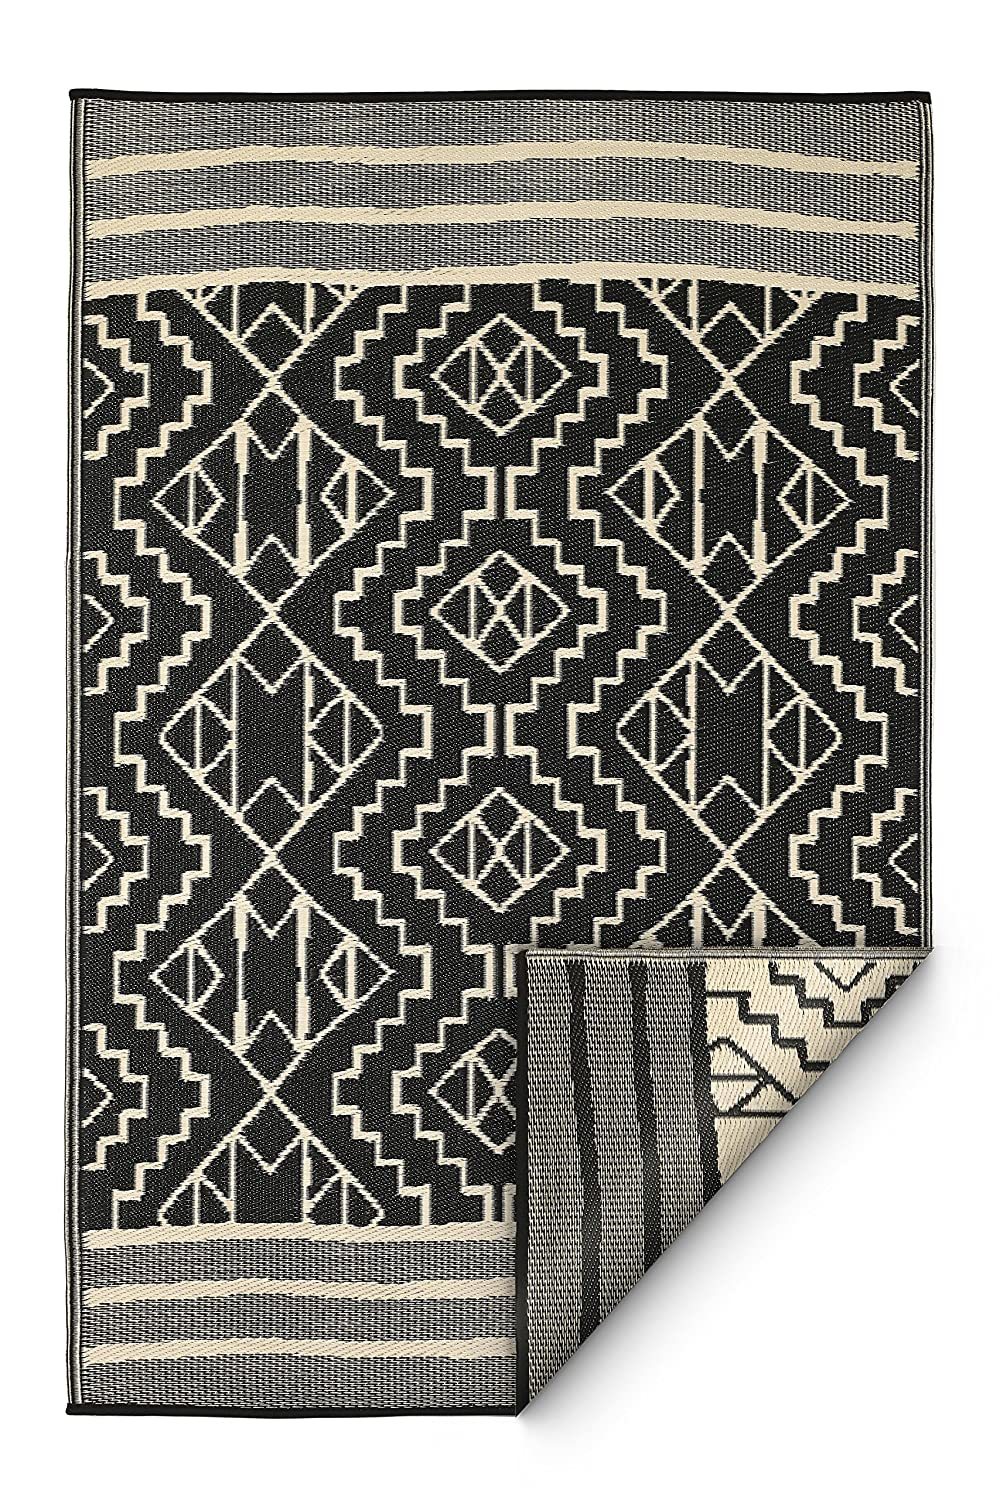 FAB HAB Reversible, Indoor/Outdoor Weather Resistant Floor Mat/Rug - Kilimanjaro - Black (240 cm x 300 cm) 788581188637